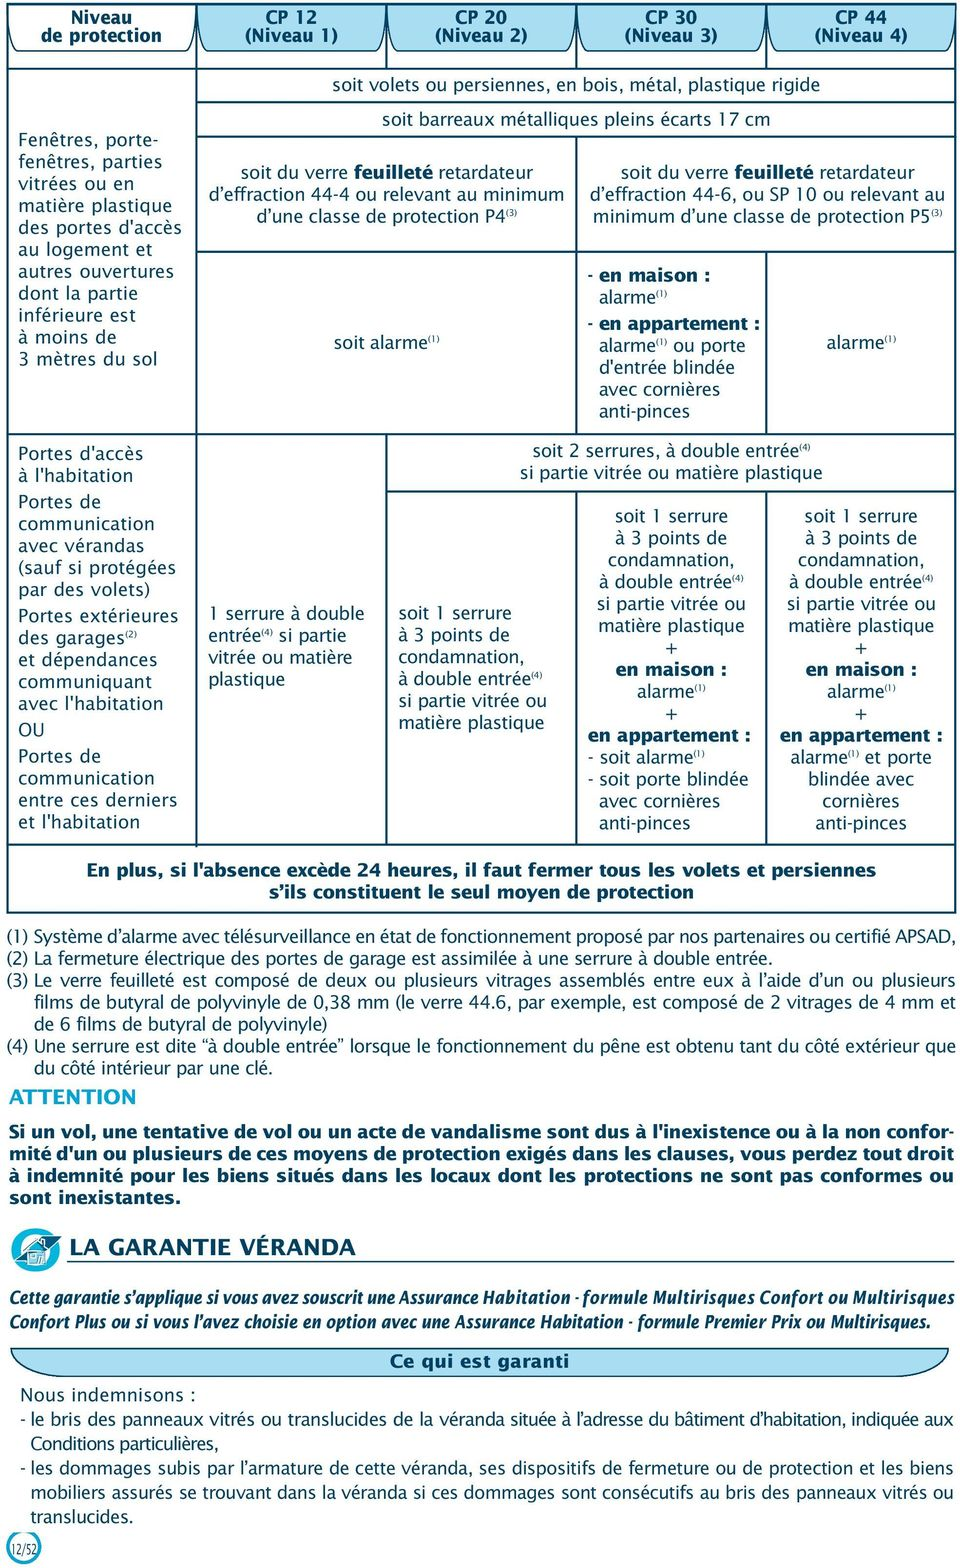 retardateur d effraction 44-4 ou relevant au minimum d une classe de protection P4 (3) soit alarme (1) soit du verre feuilleté retardateur d effraction 44-6, ou SP 10 ou relevant au minimum d une